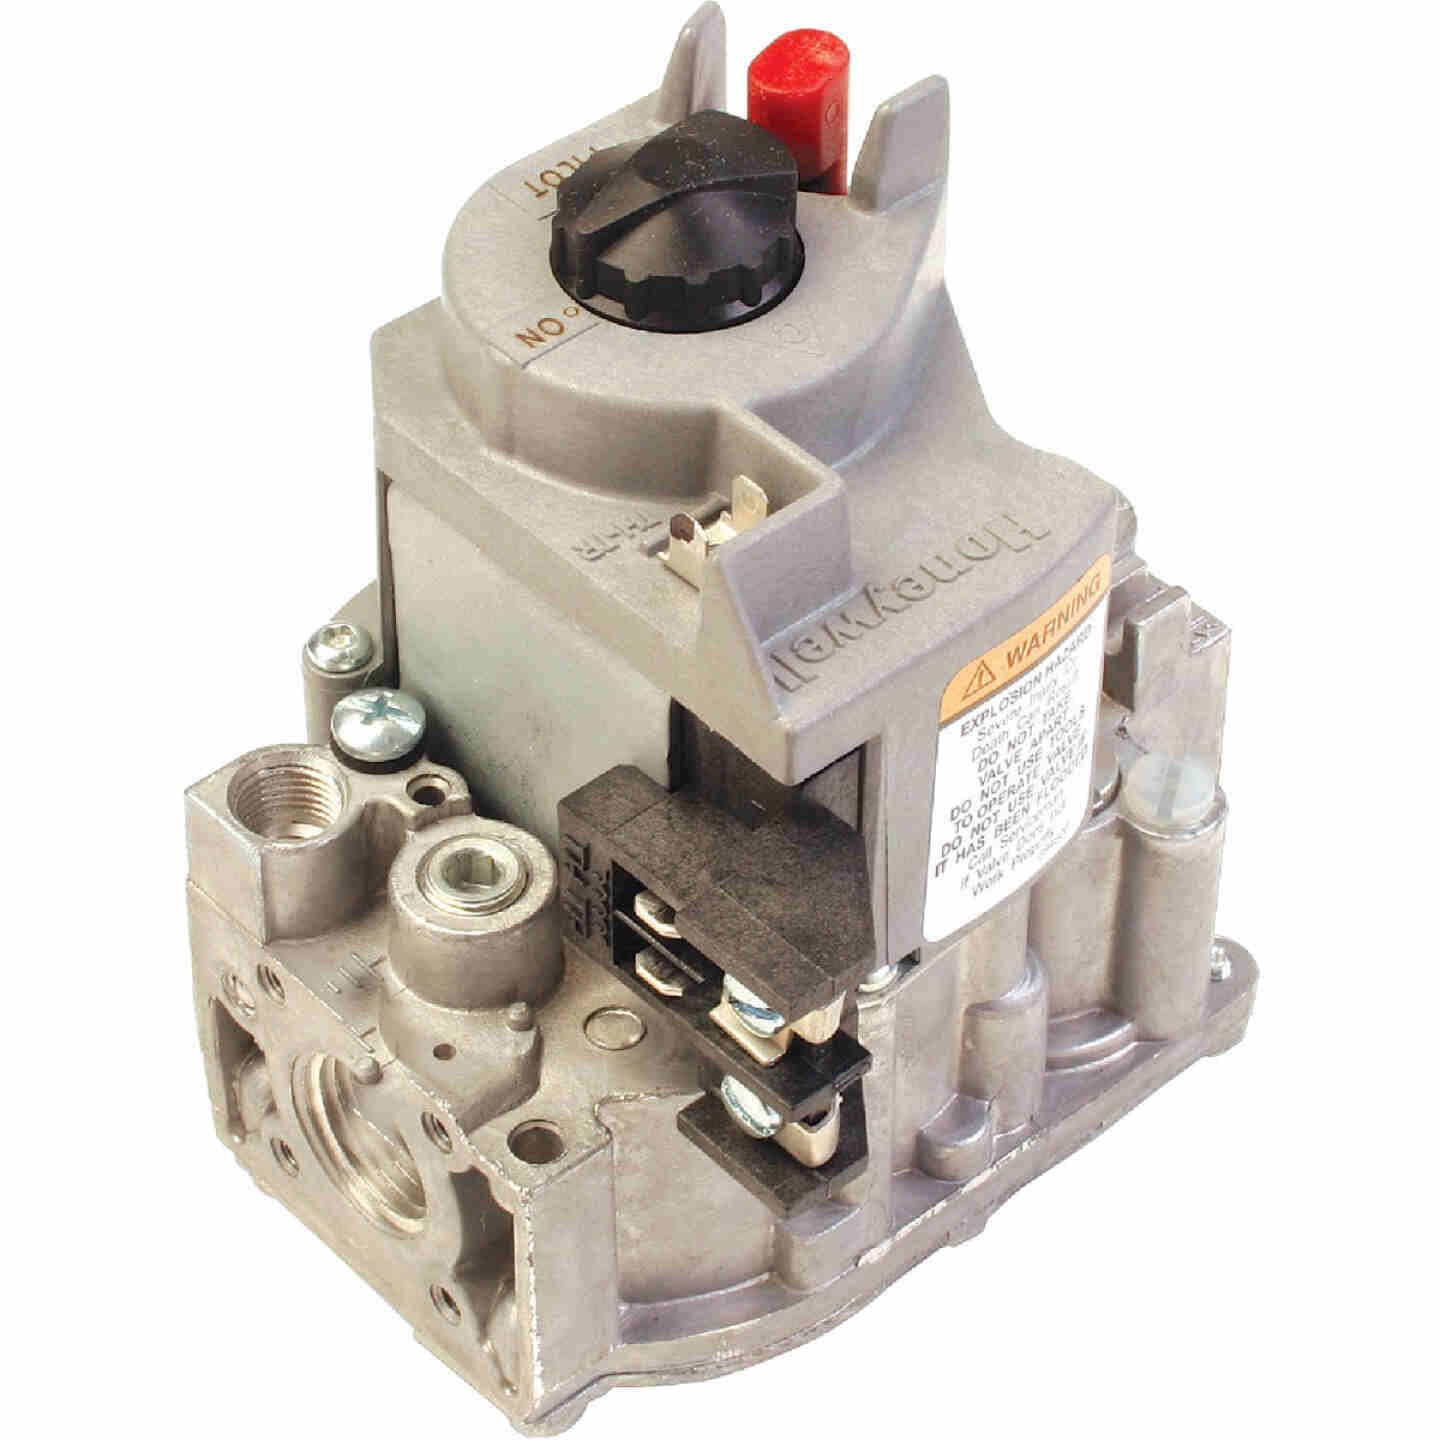 Resideo 1/2 In. x 1/2 In. Gas Control Valve Image 1